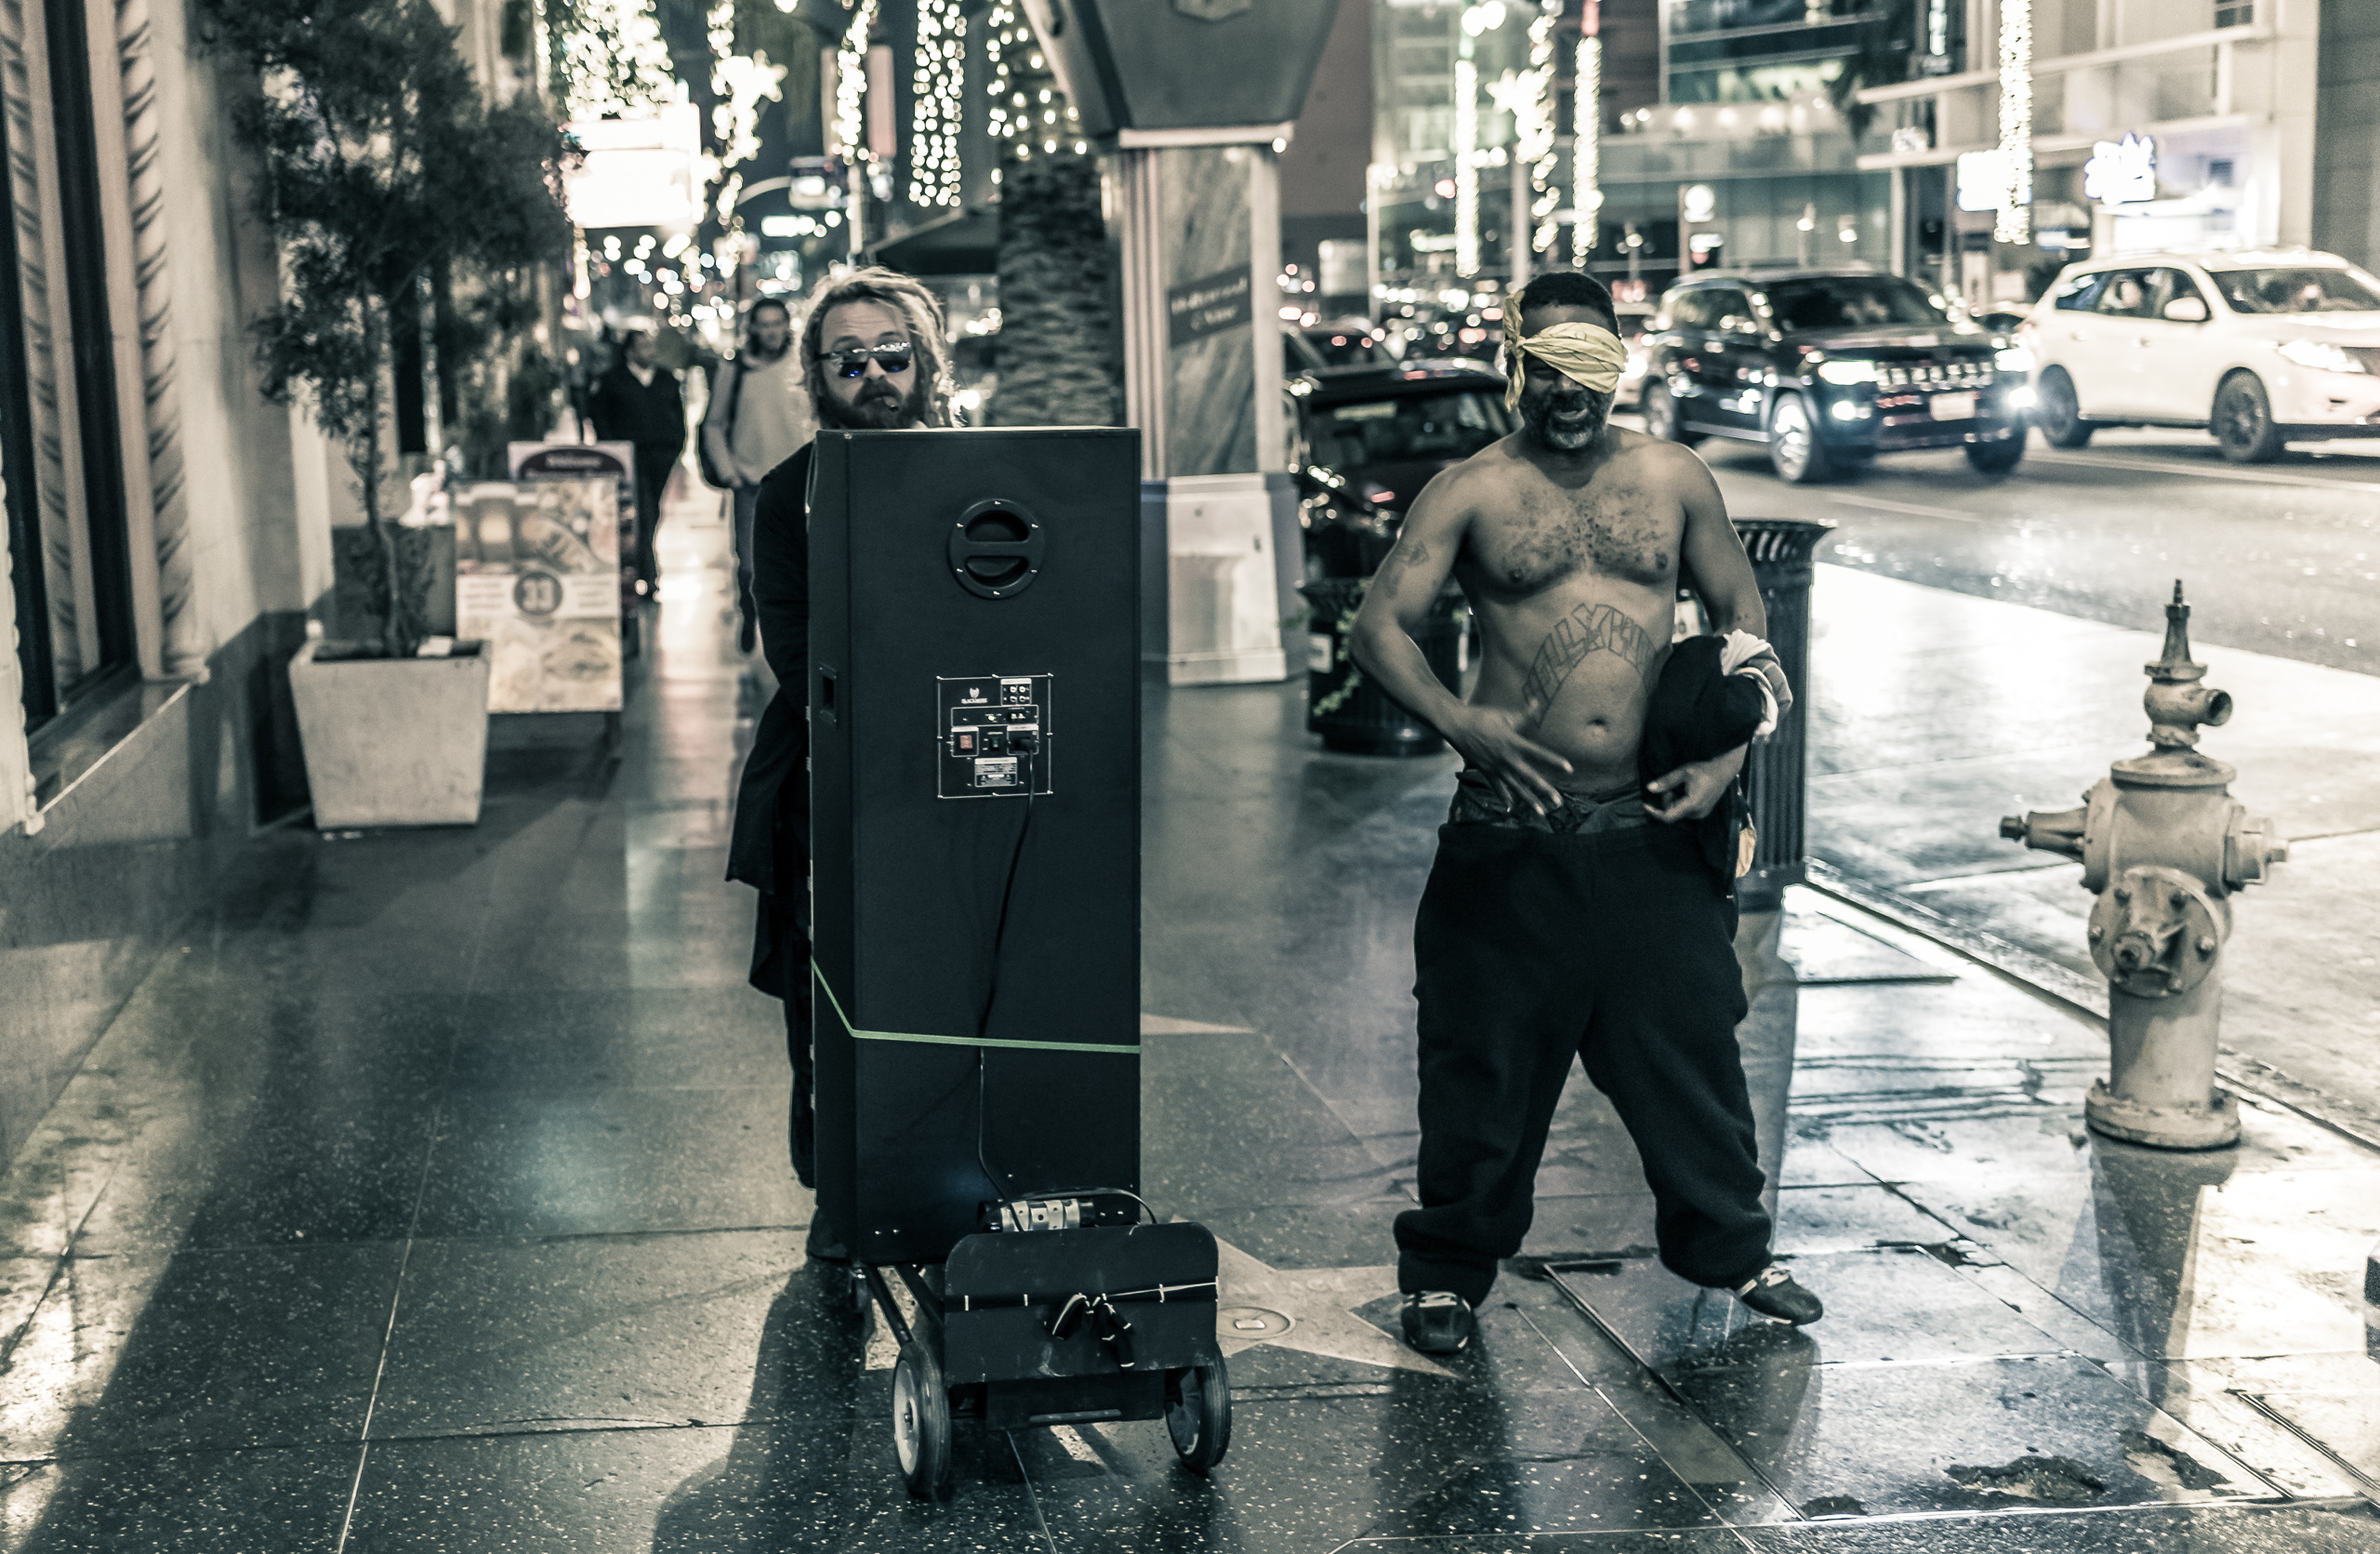 Sometimes you just have to put on a suit, plug your phone into a giant speaker, and wheel it down Hollywood Blvd as some shirtless guy with a bandana-eye-patch dances alongside you, 8:54pm